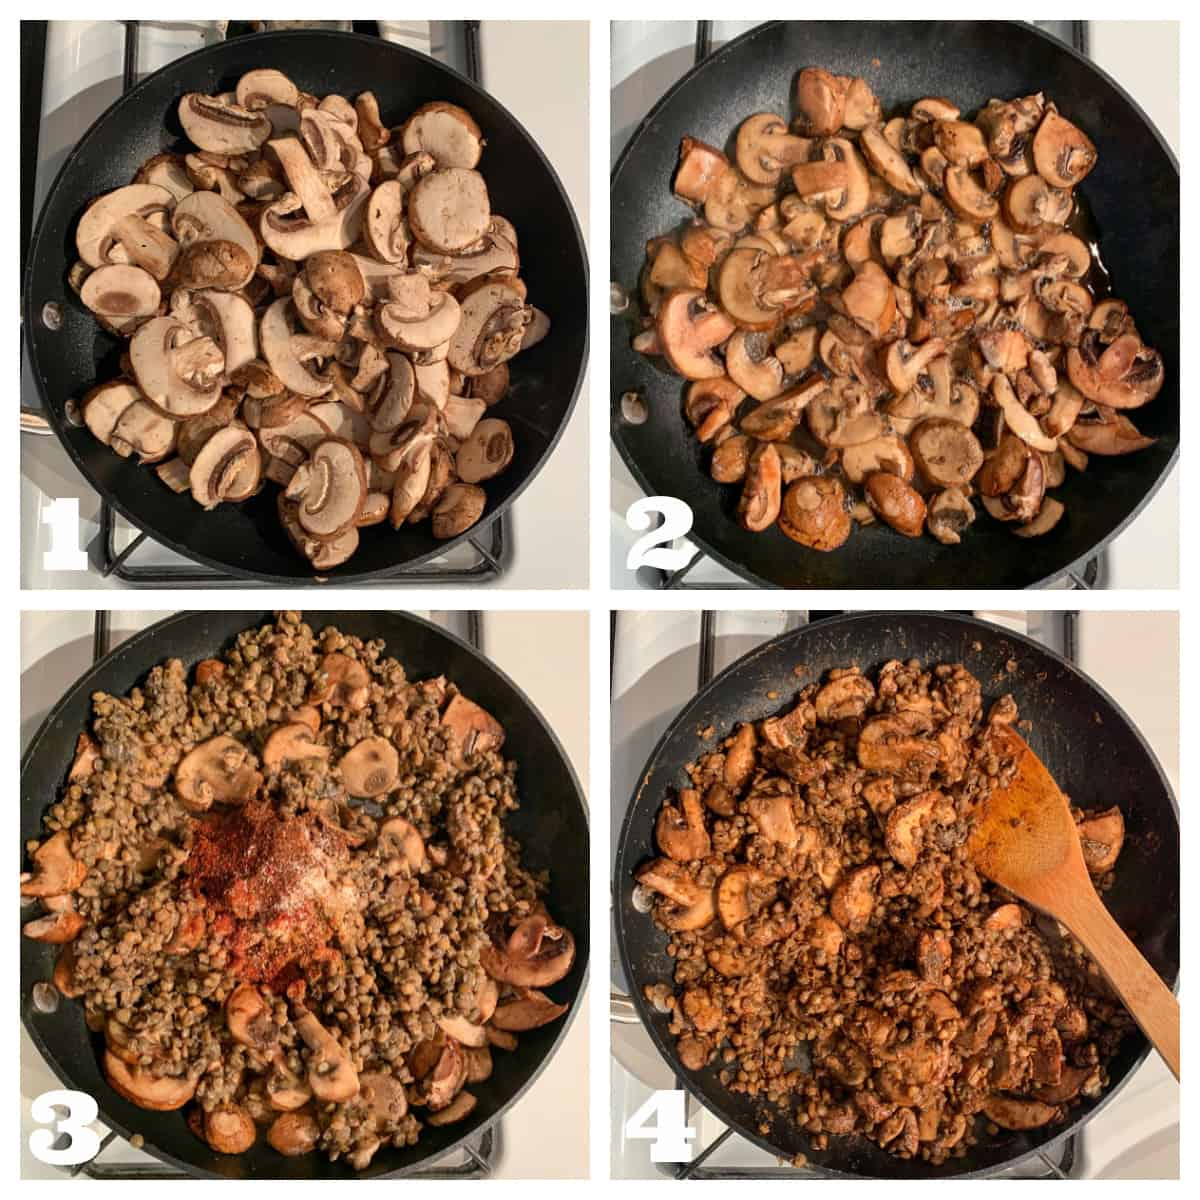 Four photo collage of cooking the mushrooms, lentils, and spices.